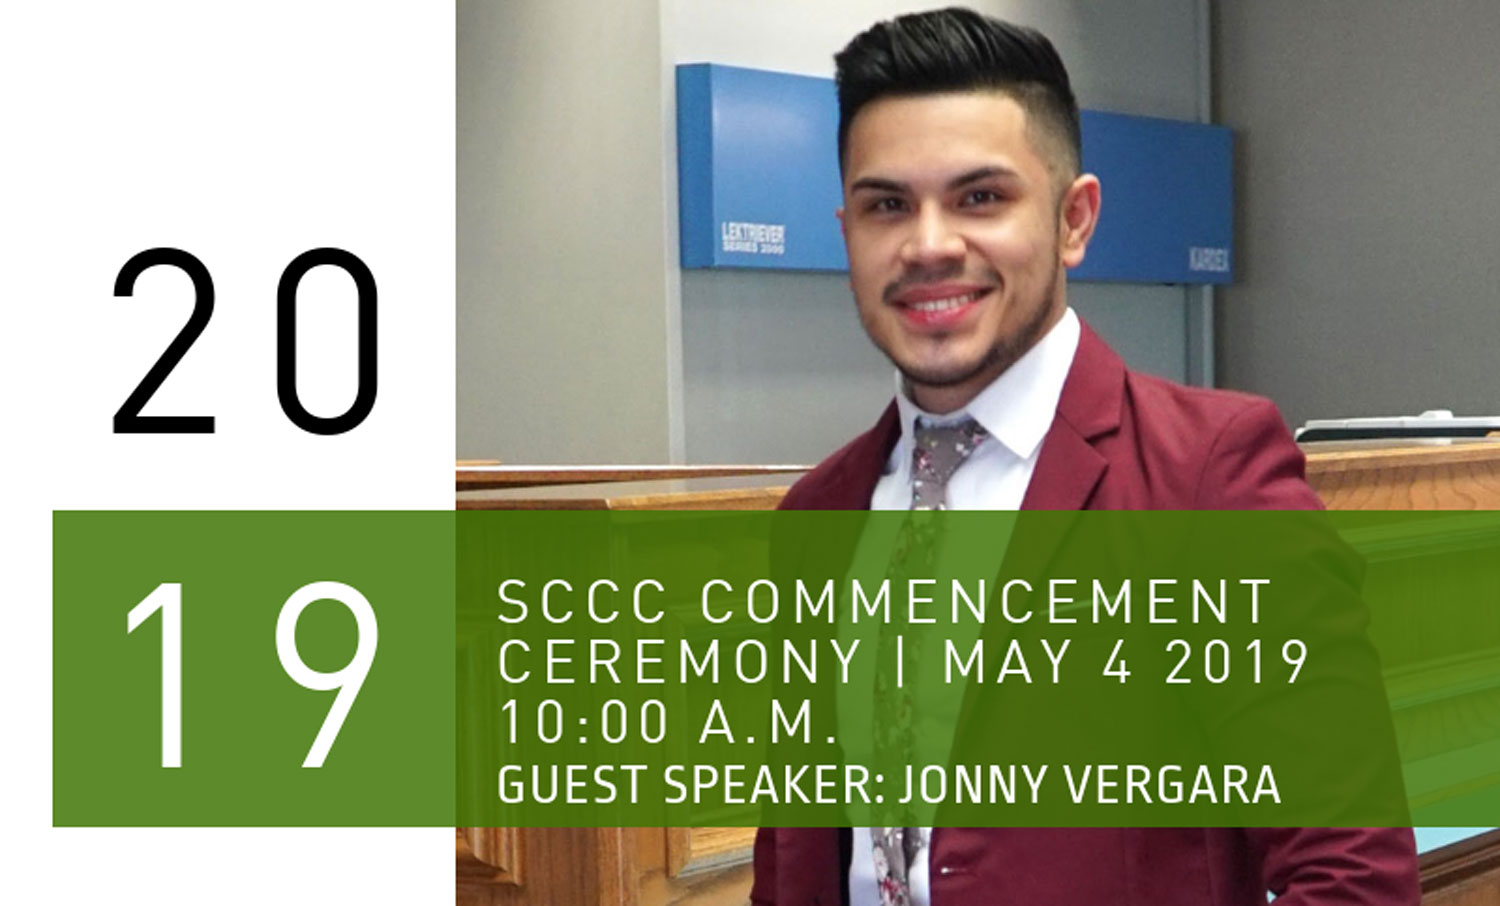 Seward County Community College will hold the 48th annual commencement ceremony on May 4 at 10 a.m. in the Greenhouse. Special guest, senior branch manager at Sunflower Bank of Liberal, Jonny Vergara, will be giving a speech as SCCC president Ken Trzaska asked him to do so.